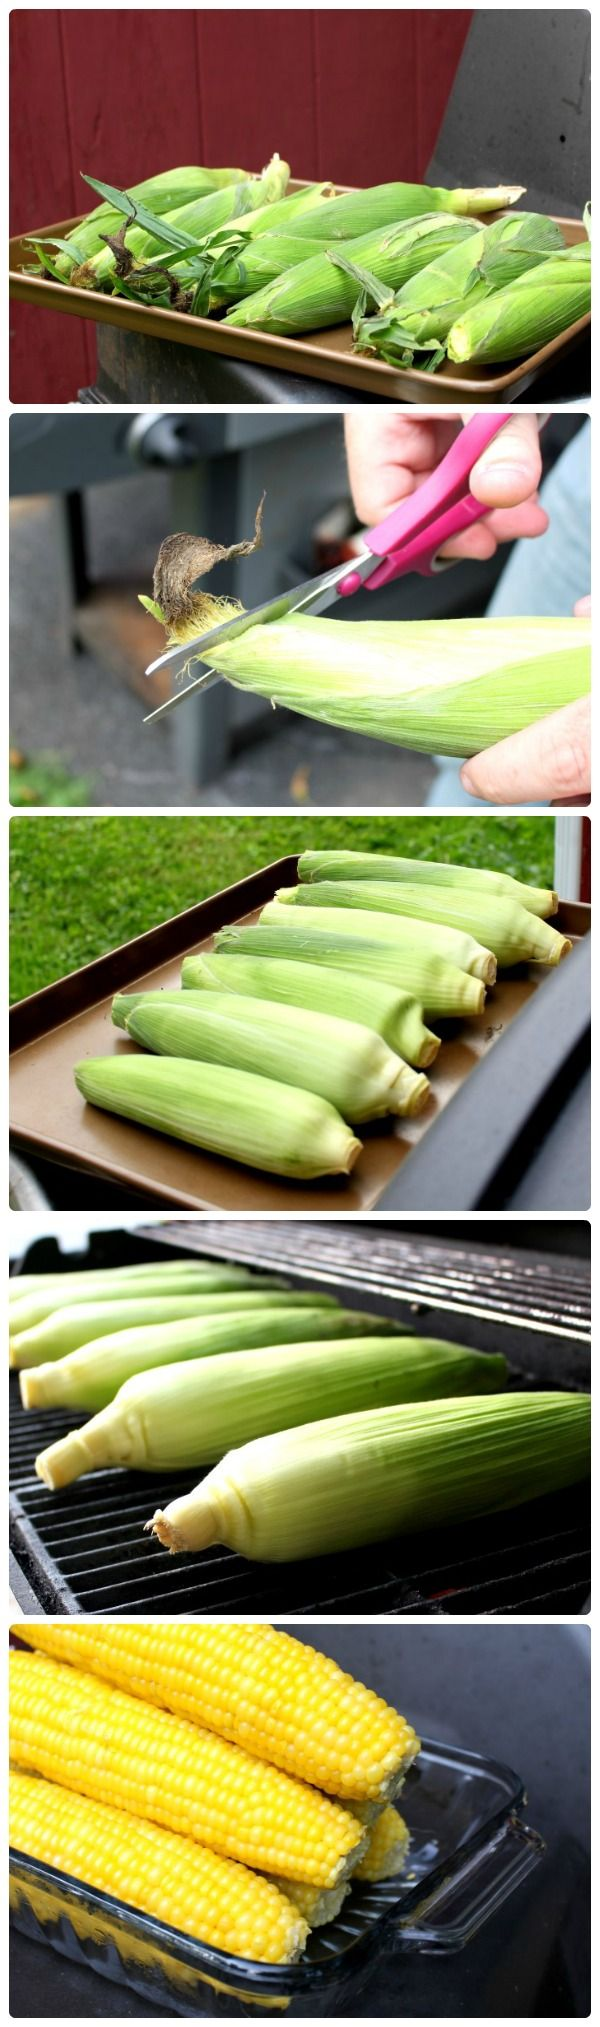 The easiest, tastiest way to grill your sweet corn. Grilled sweet corn is not only super easy, but it brings out all the sweet, delicious flavors of the corn.